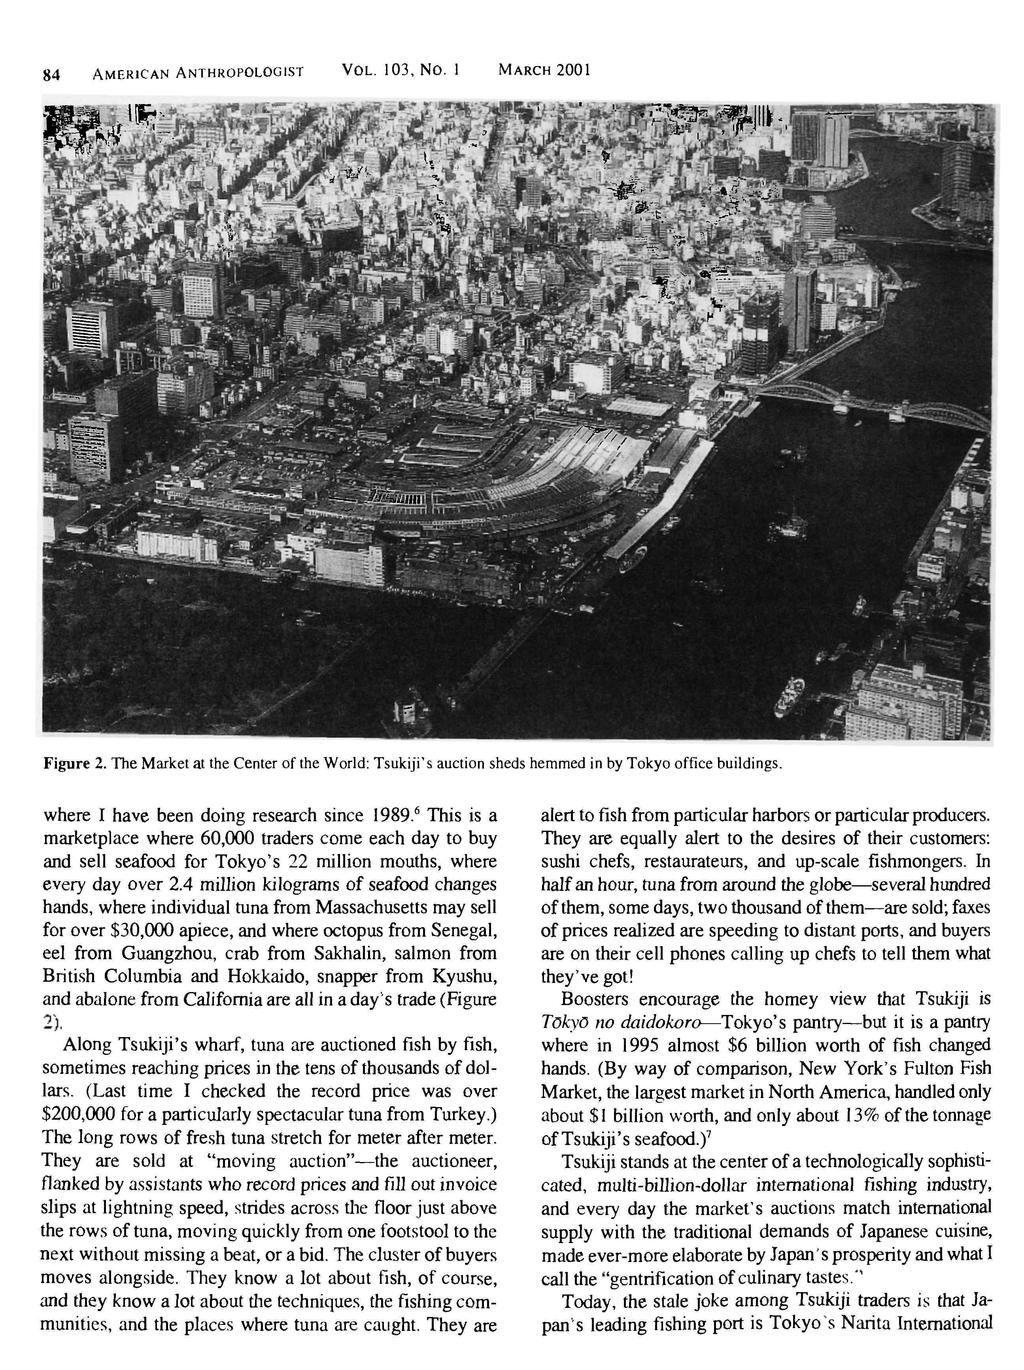 84 AMERICAN ANTHROPOLOGIST VOL. 103, No. 1 MARCH 2001 Figure 2. The Market at the Center of the World: Tsukiji's auction sheds hemmed in by Tokyo office buildings.